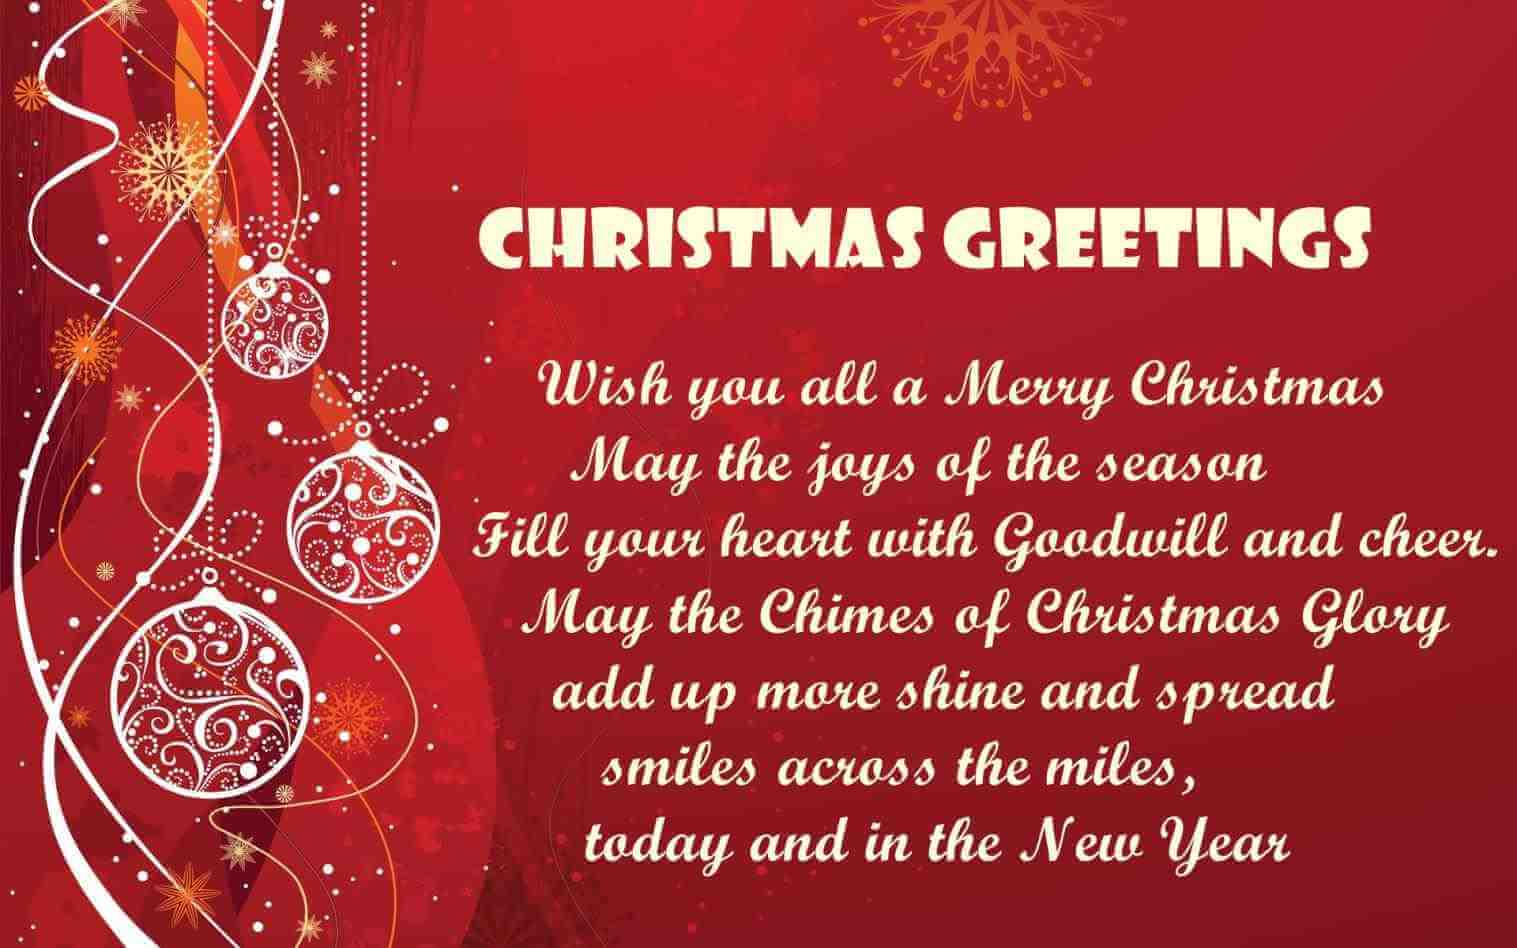 Merry Christmas Sayings for Family